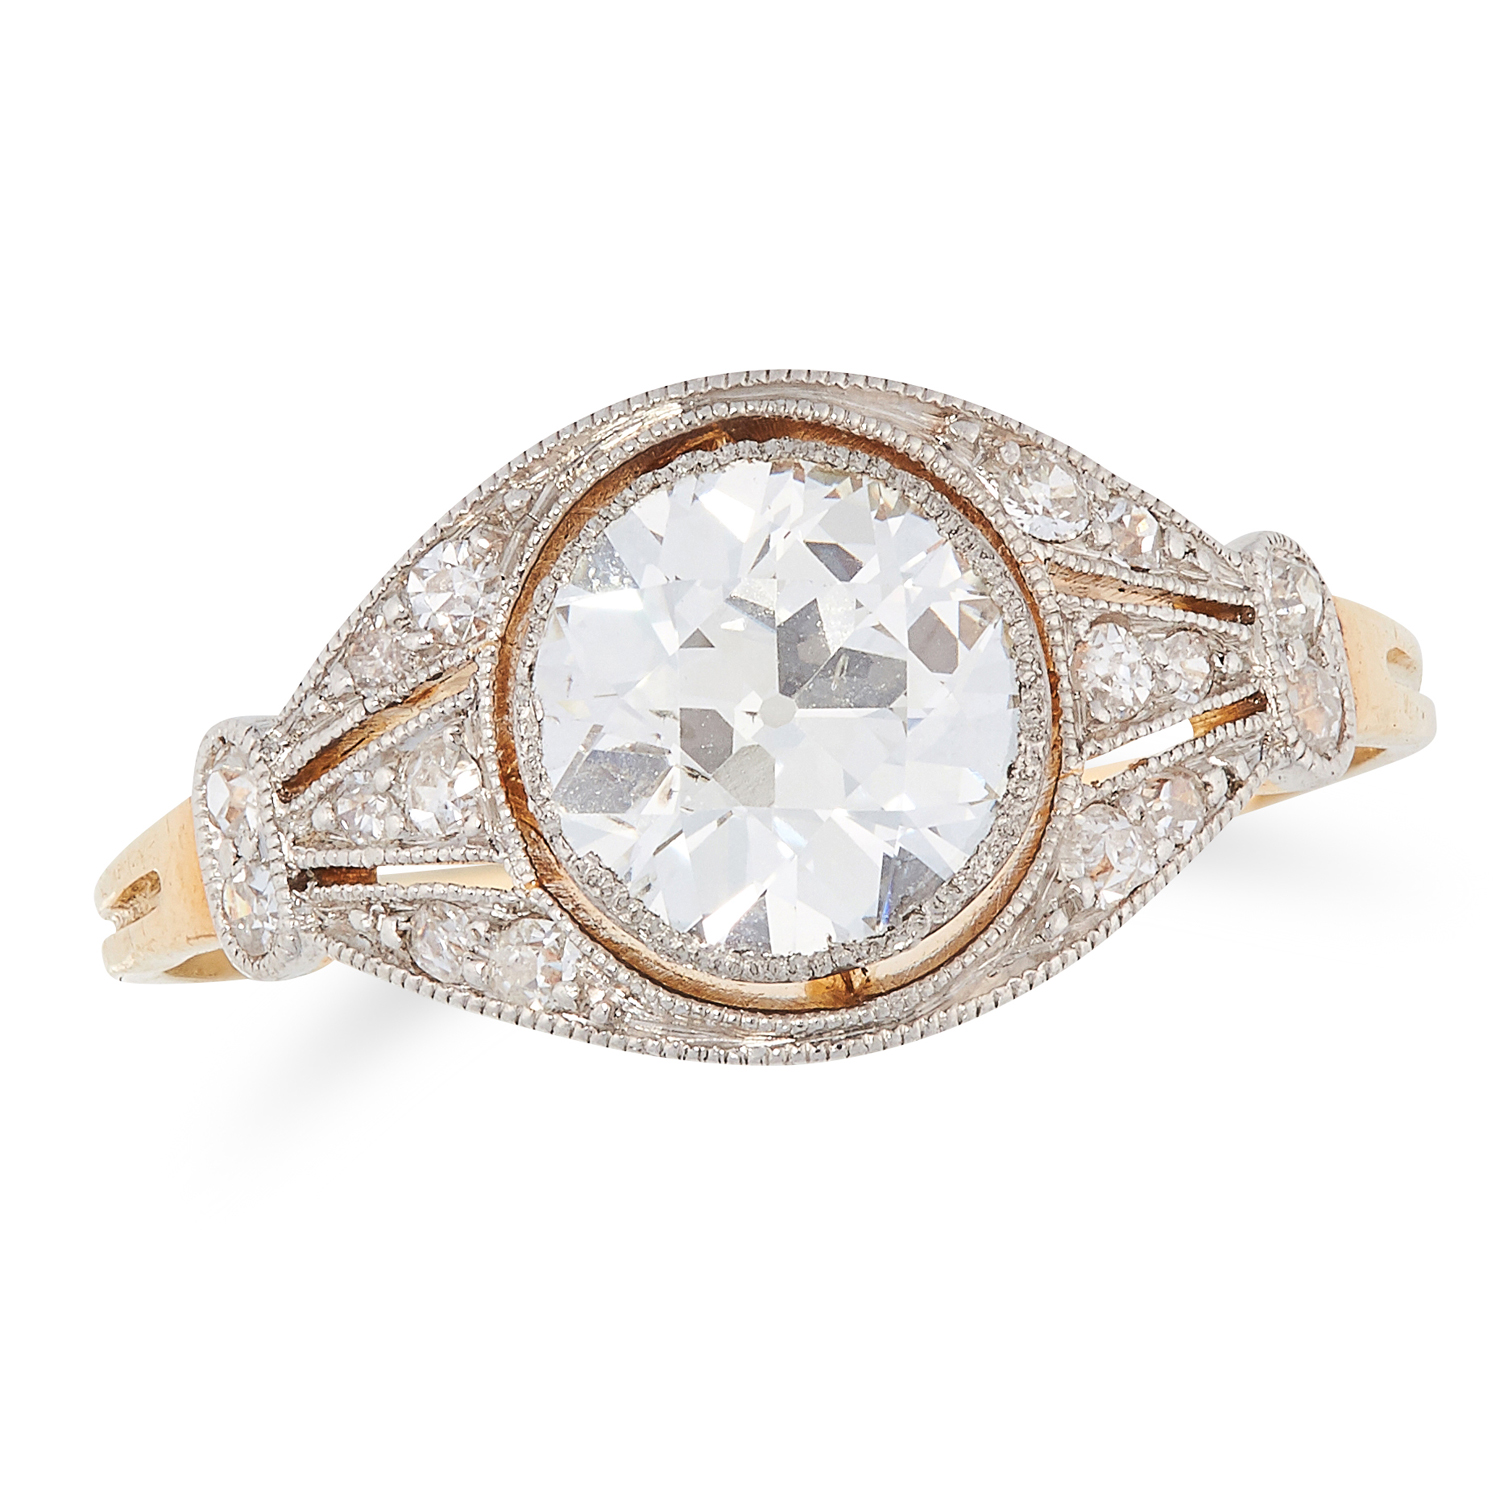 AN ANTIQUE DIAMOND DRESS RING, EARLY 20TH CENTURY in yellow gold, set with a central old round cut